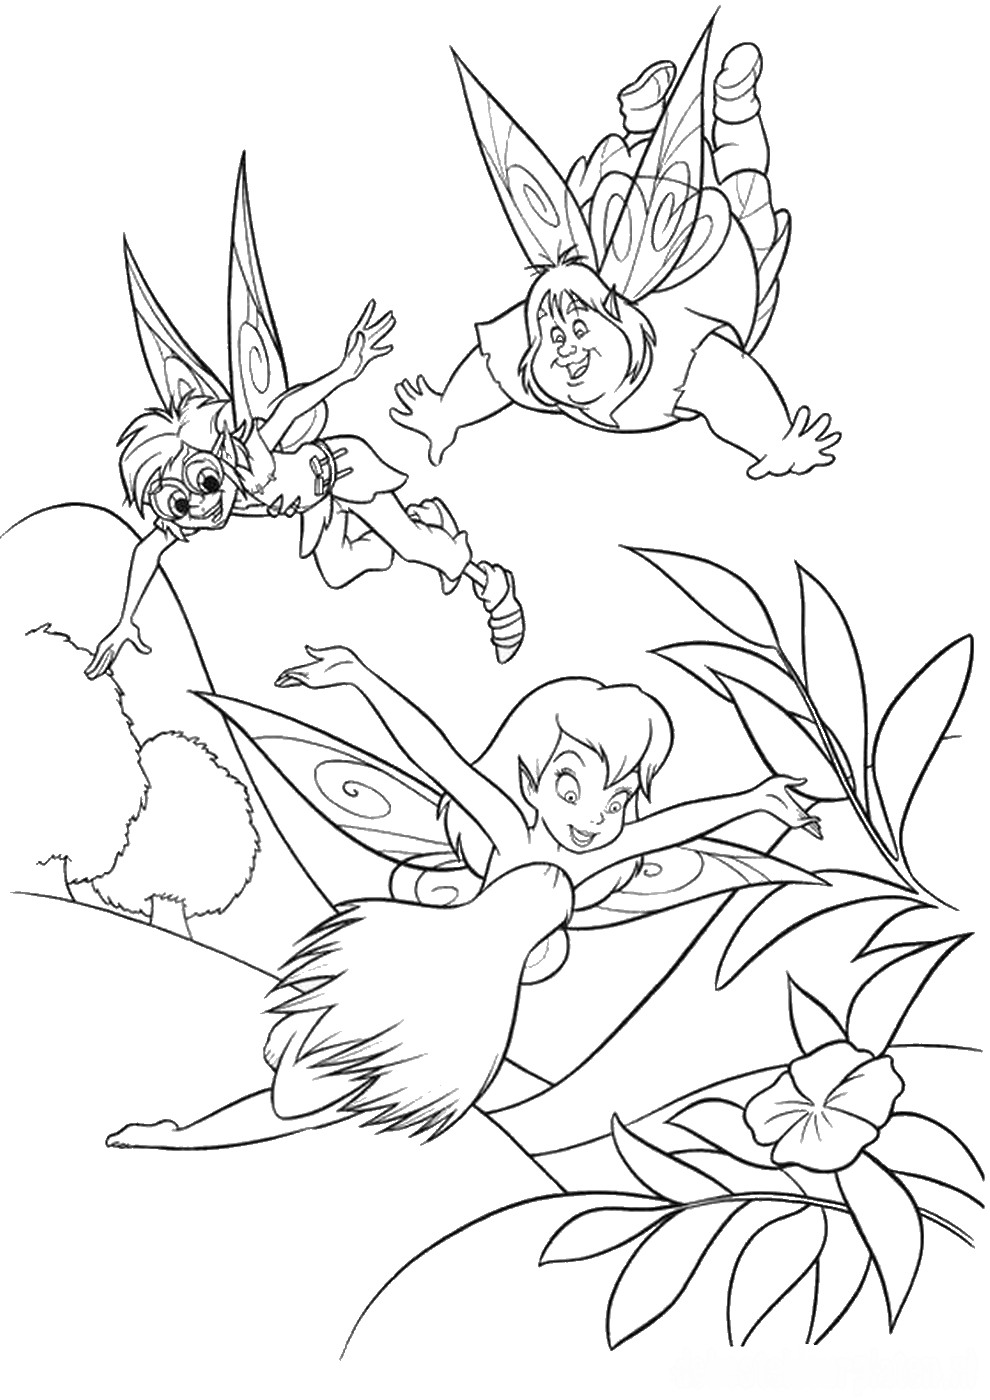 tinkerbell coloring book tinkerbell coloring pages tinkerbell book coloring